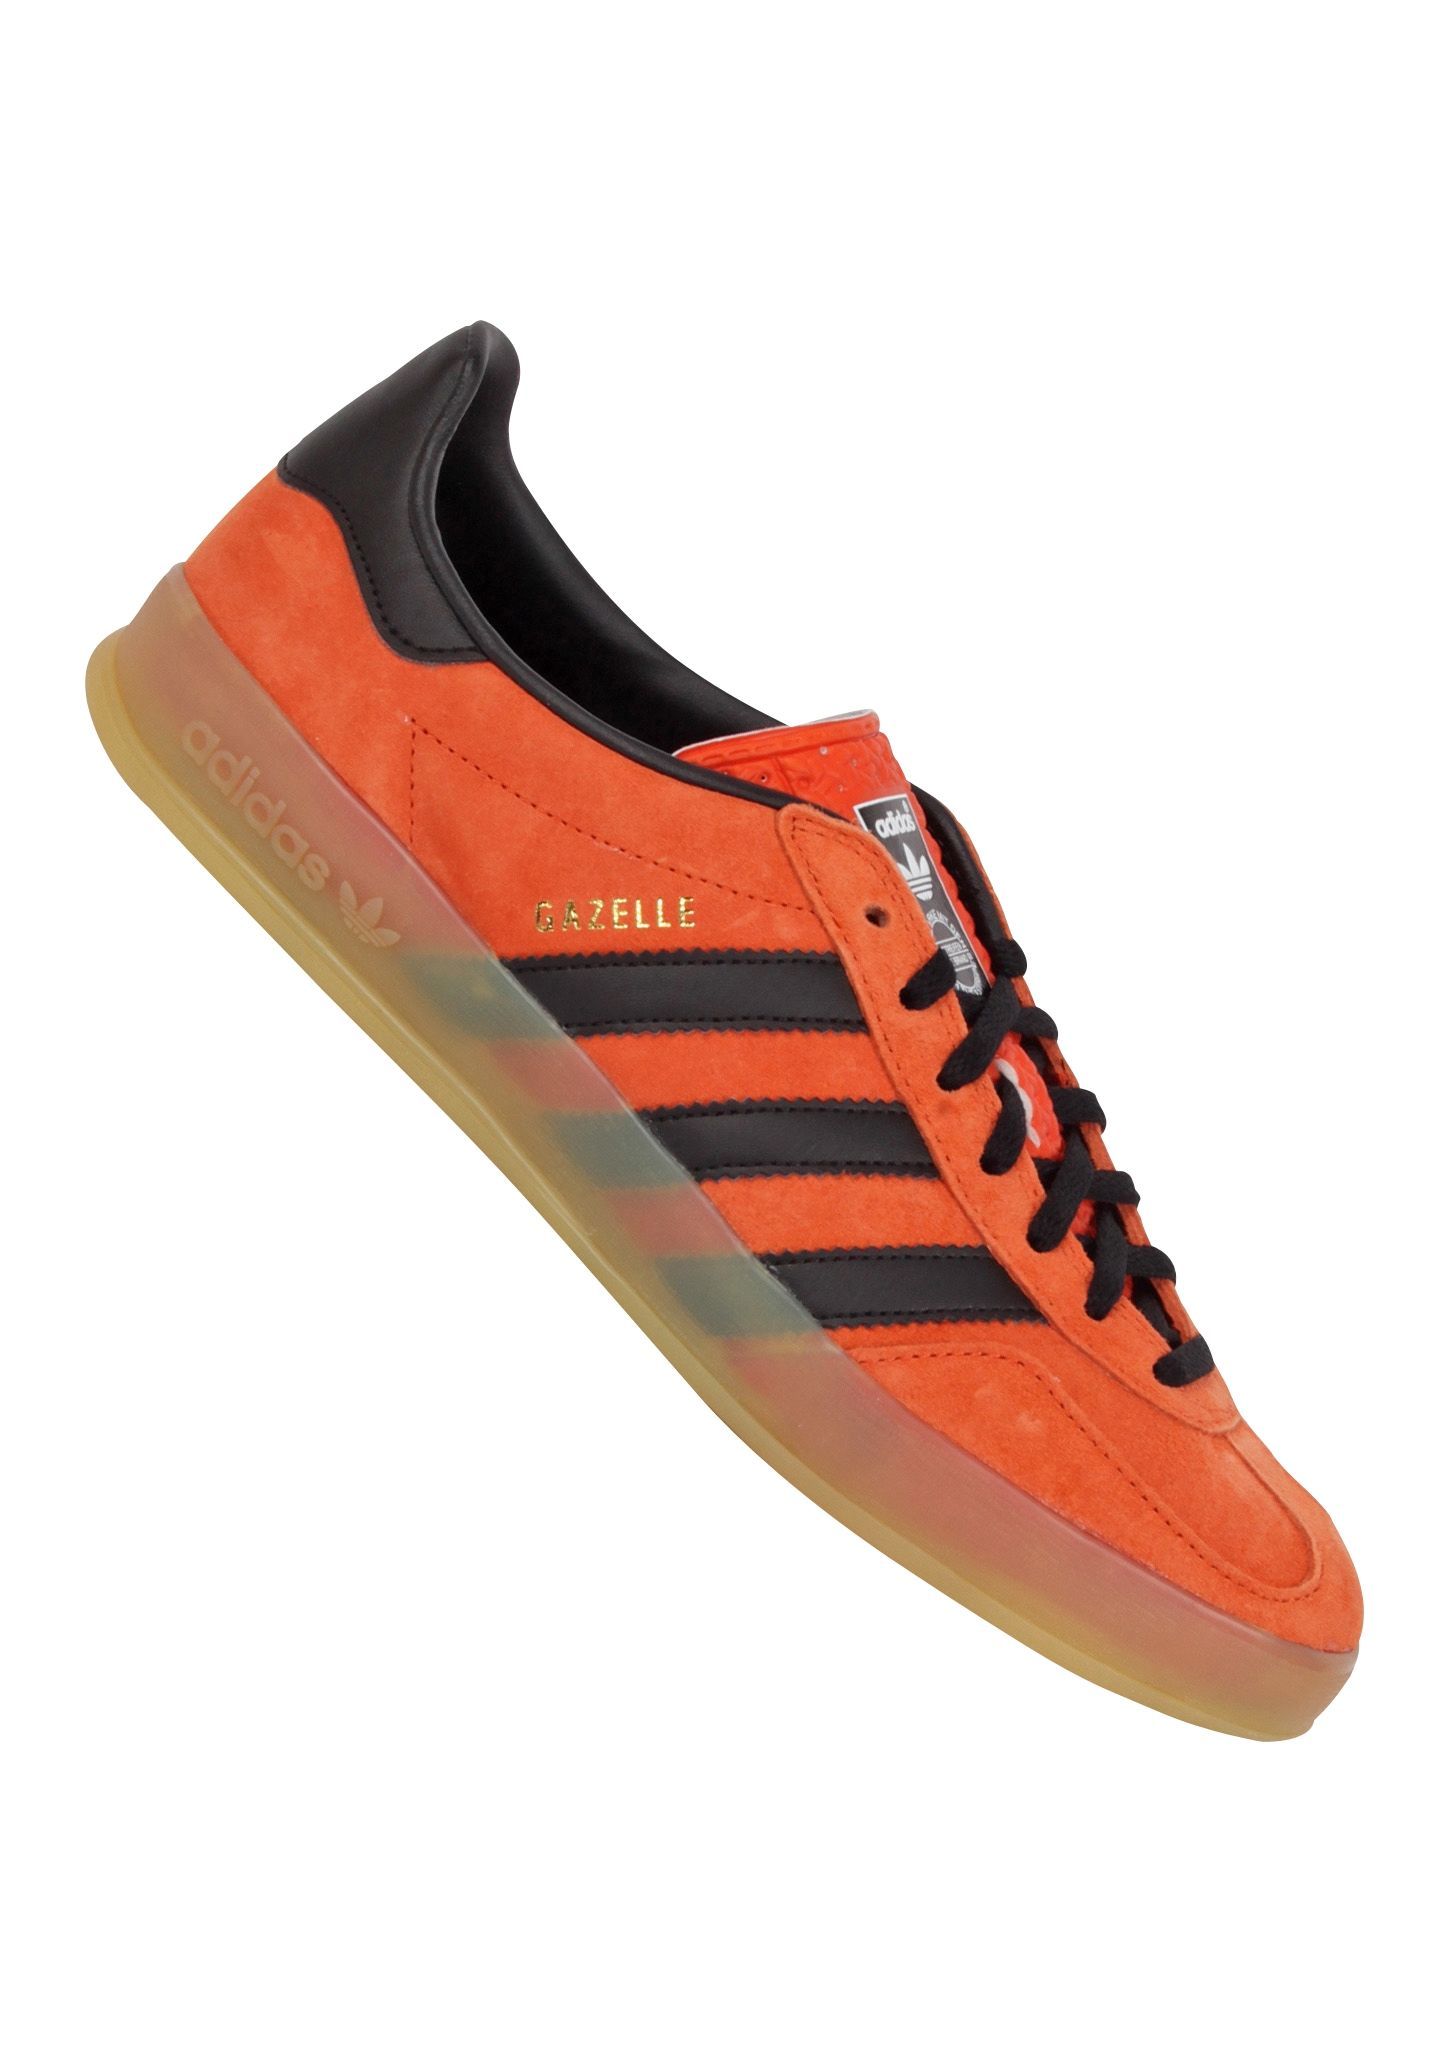 adidas gazelle indoor orange